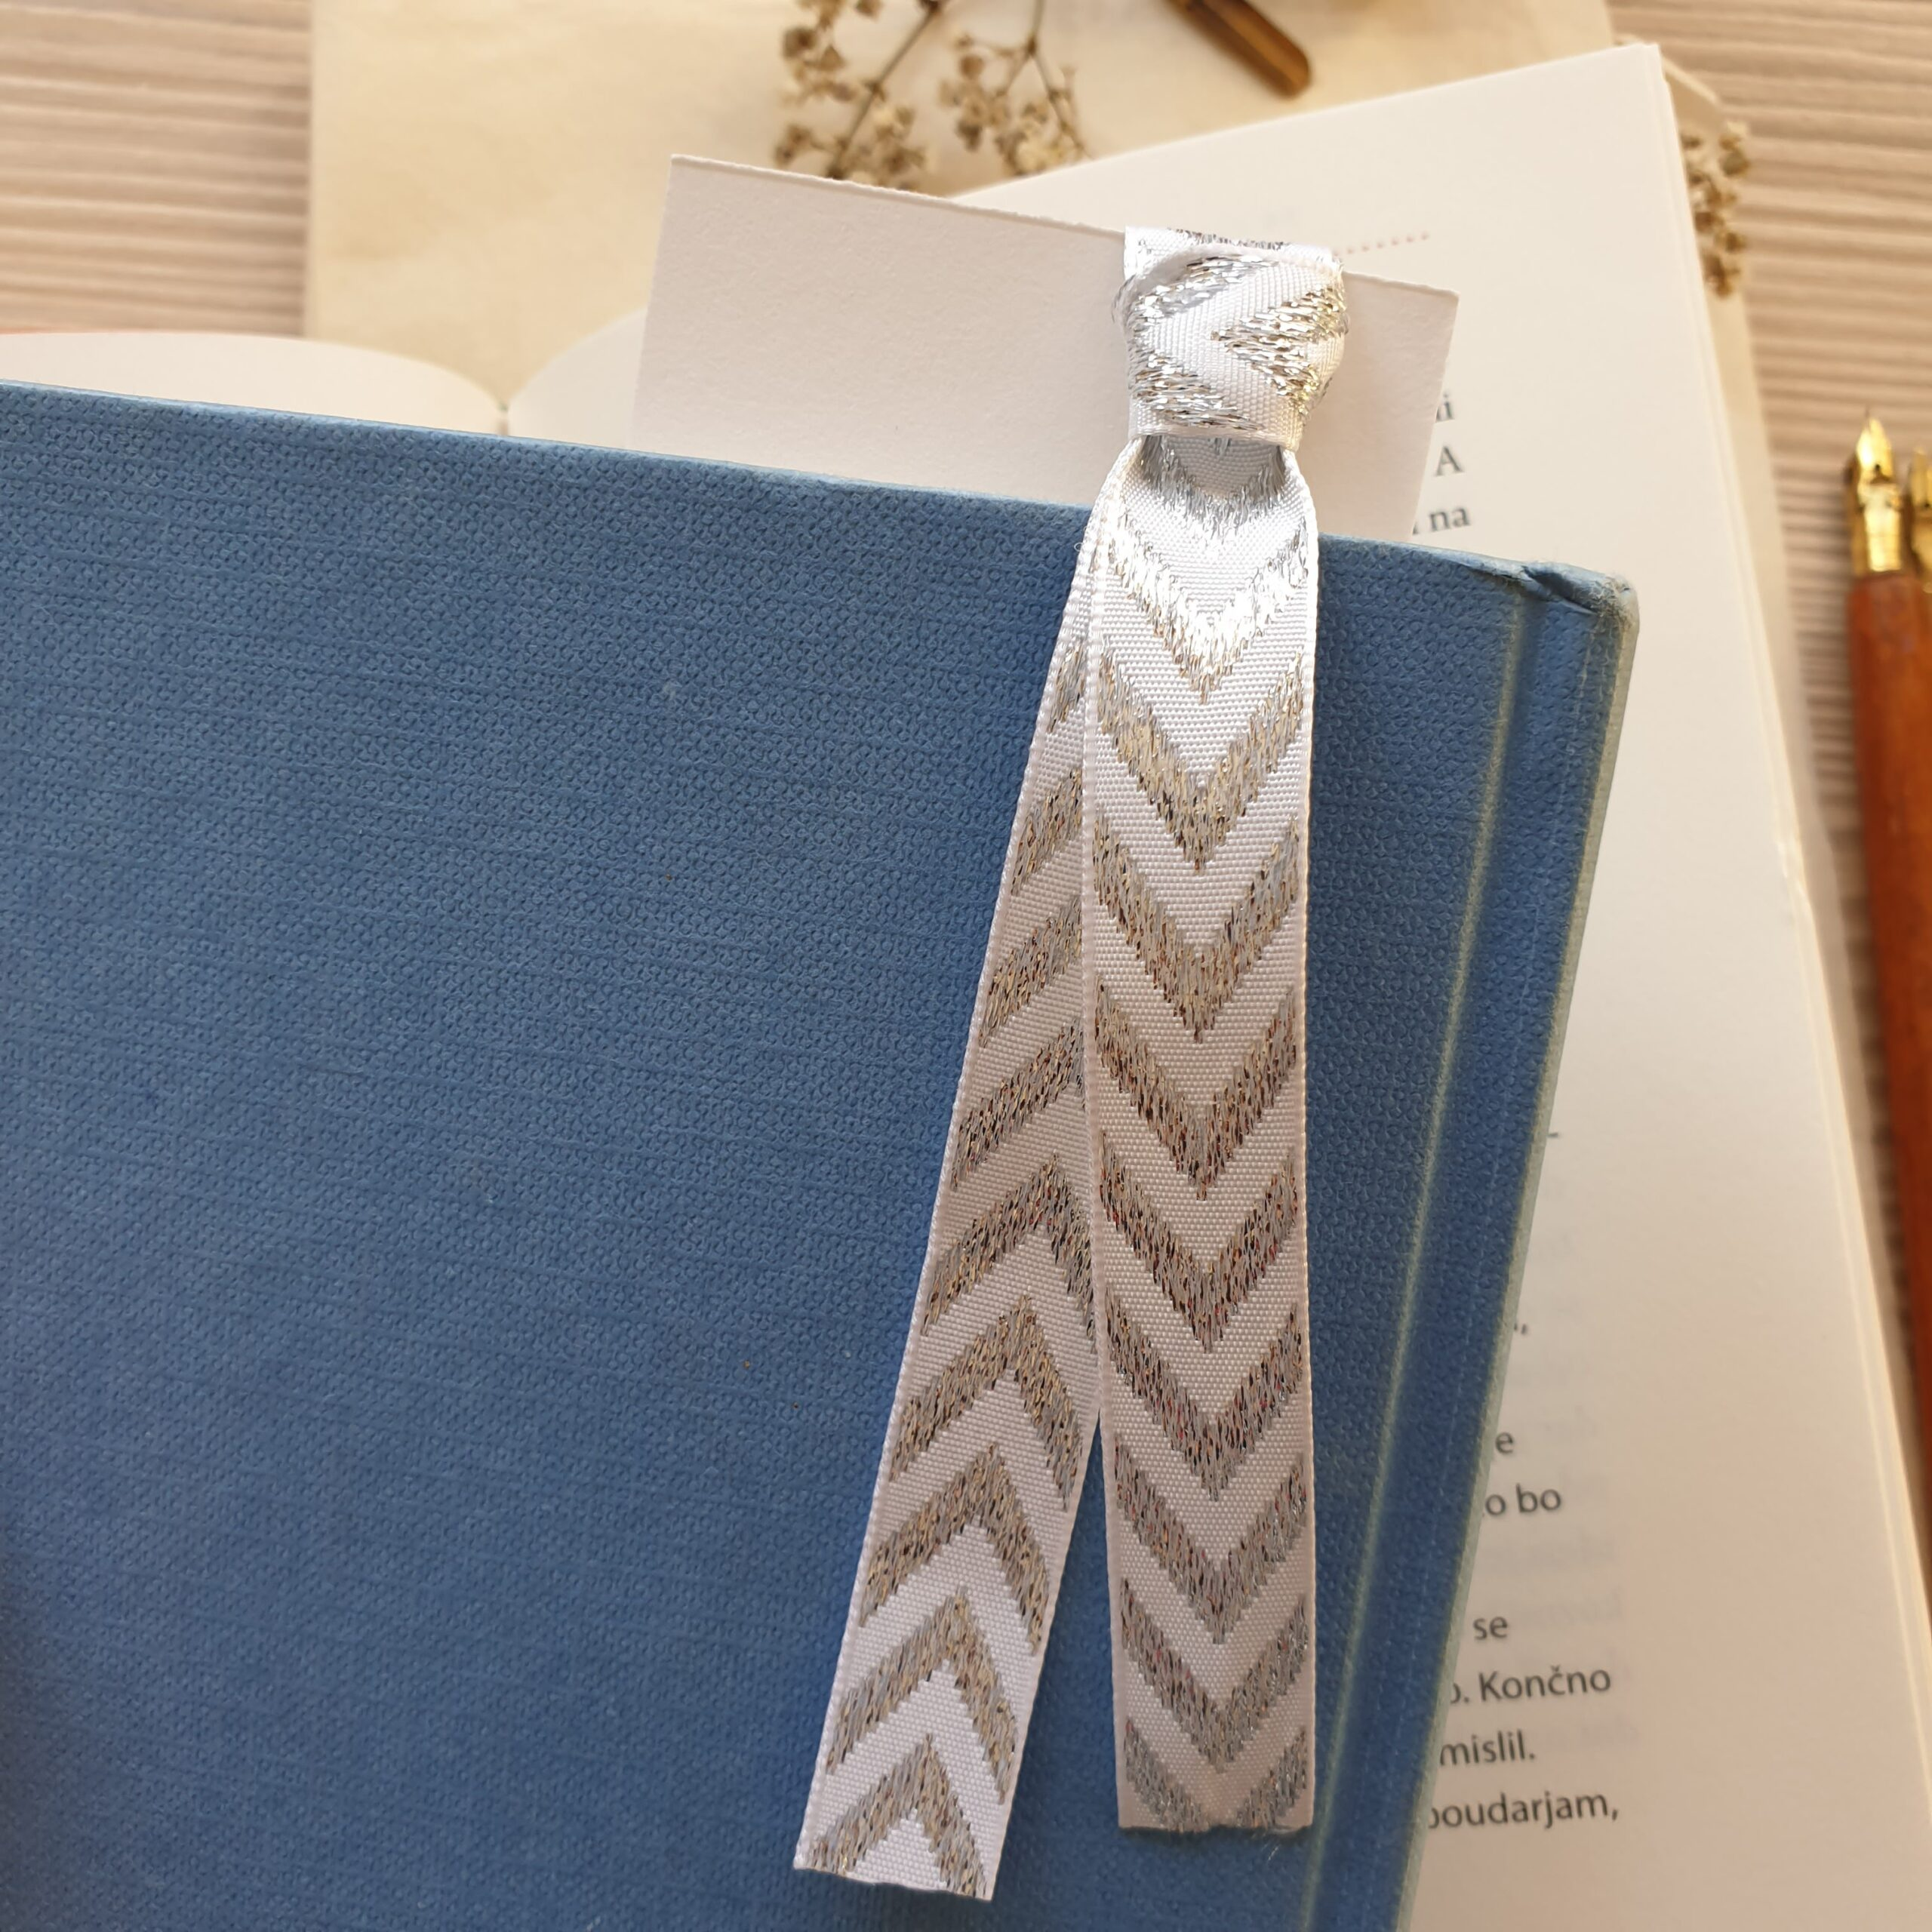 Floral bookmark in a book, silver